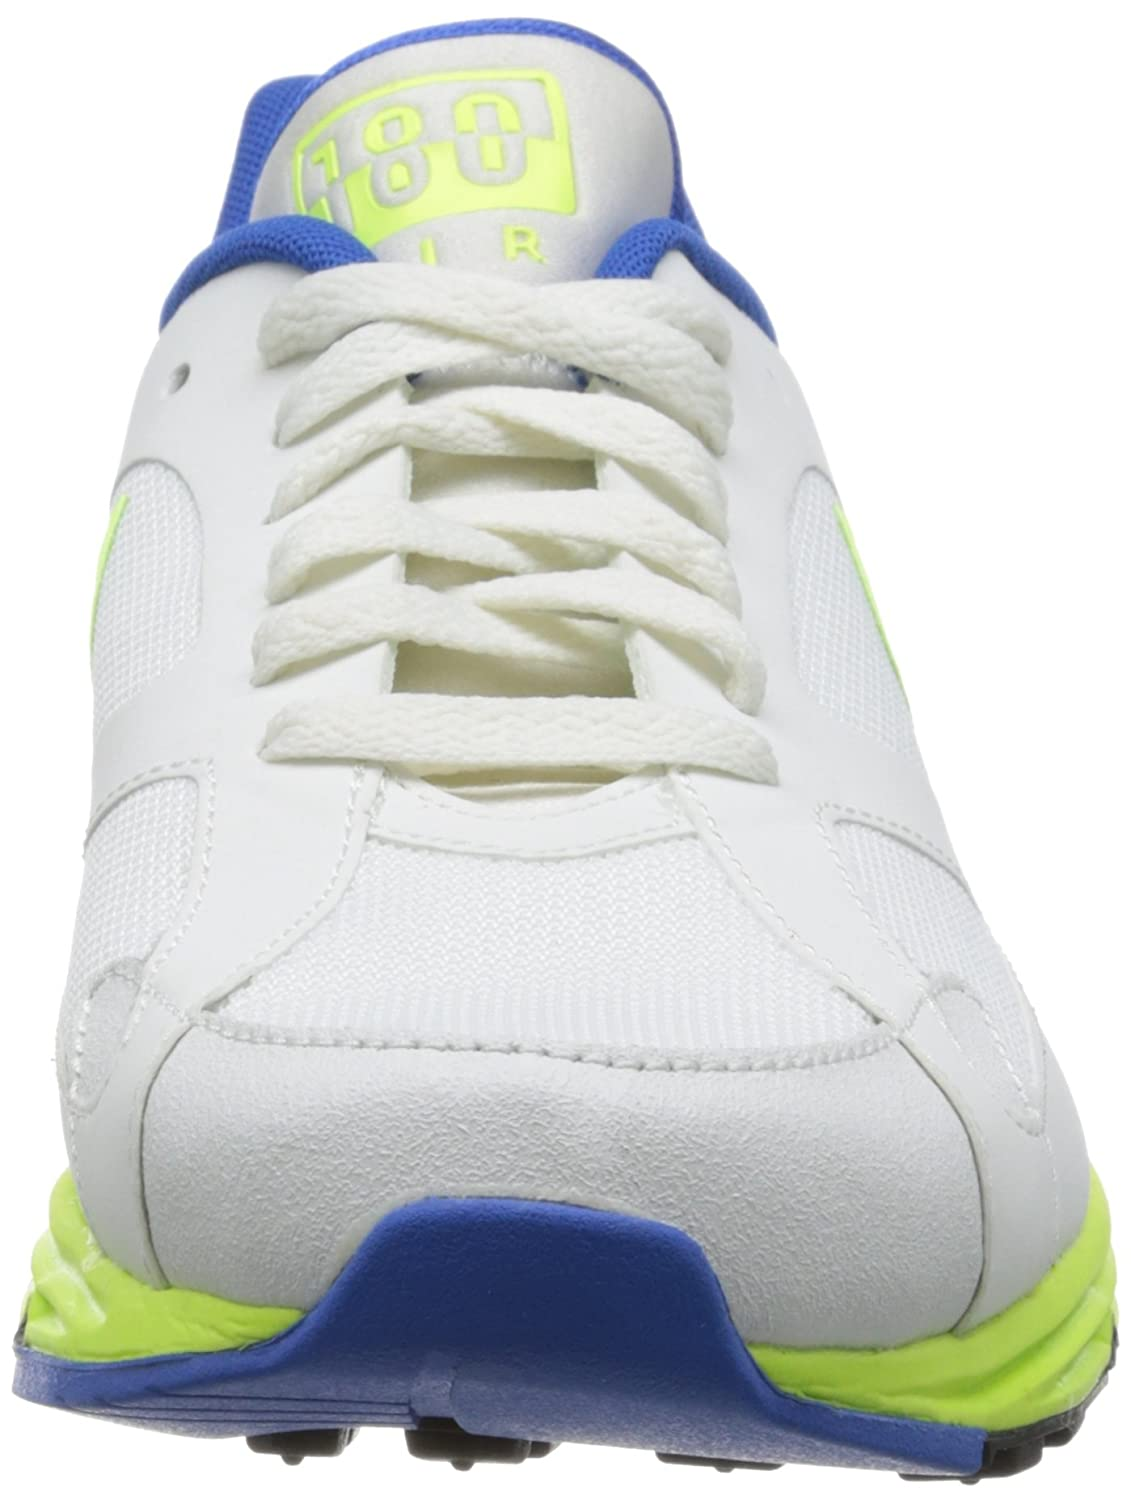 5bd23027286b Nike Air Max Terra 180 QS Summit White Hot Lime-Bl Spphr (US 8)  Amazon.ca   Shoes   Handbags